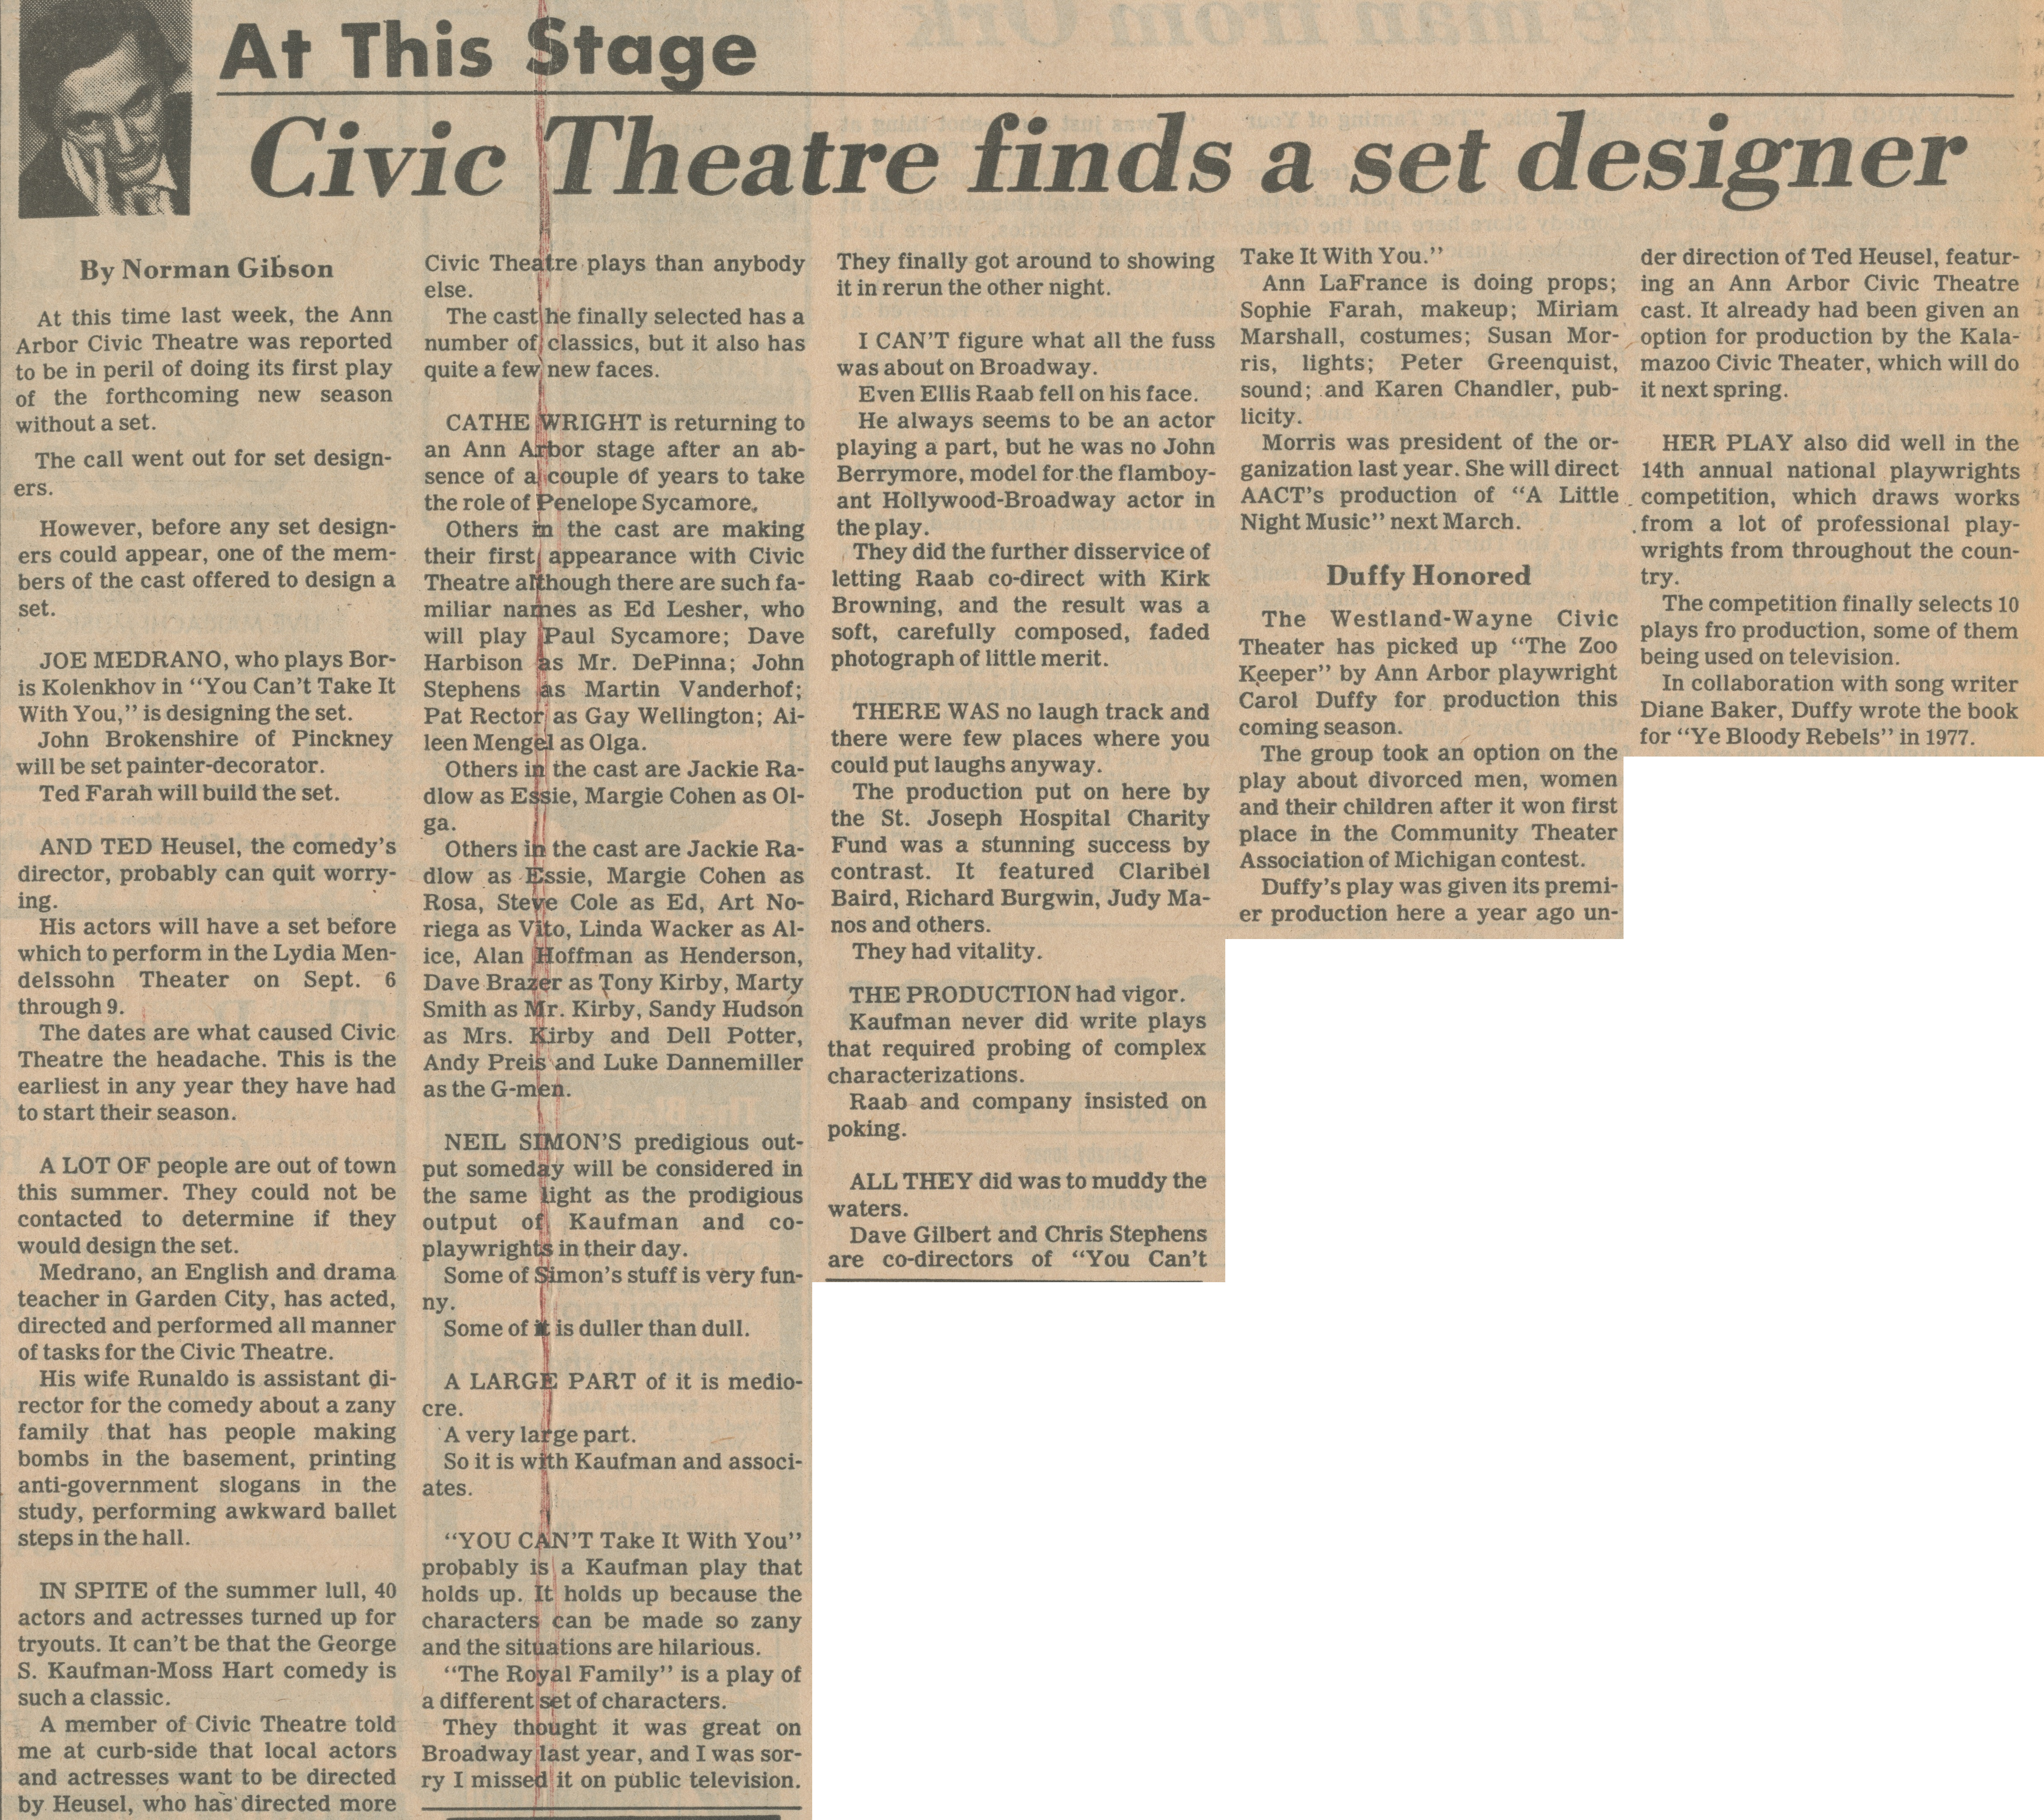 Civic Theatre Finds A Set Designer image